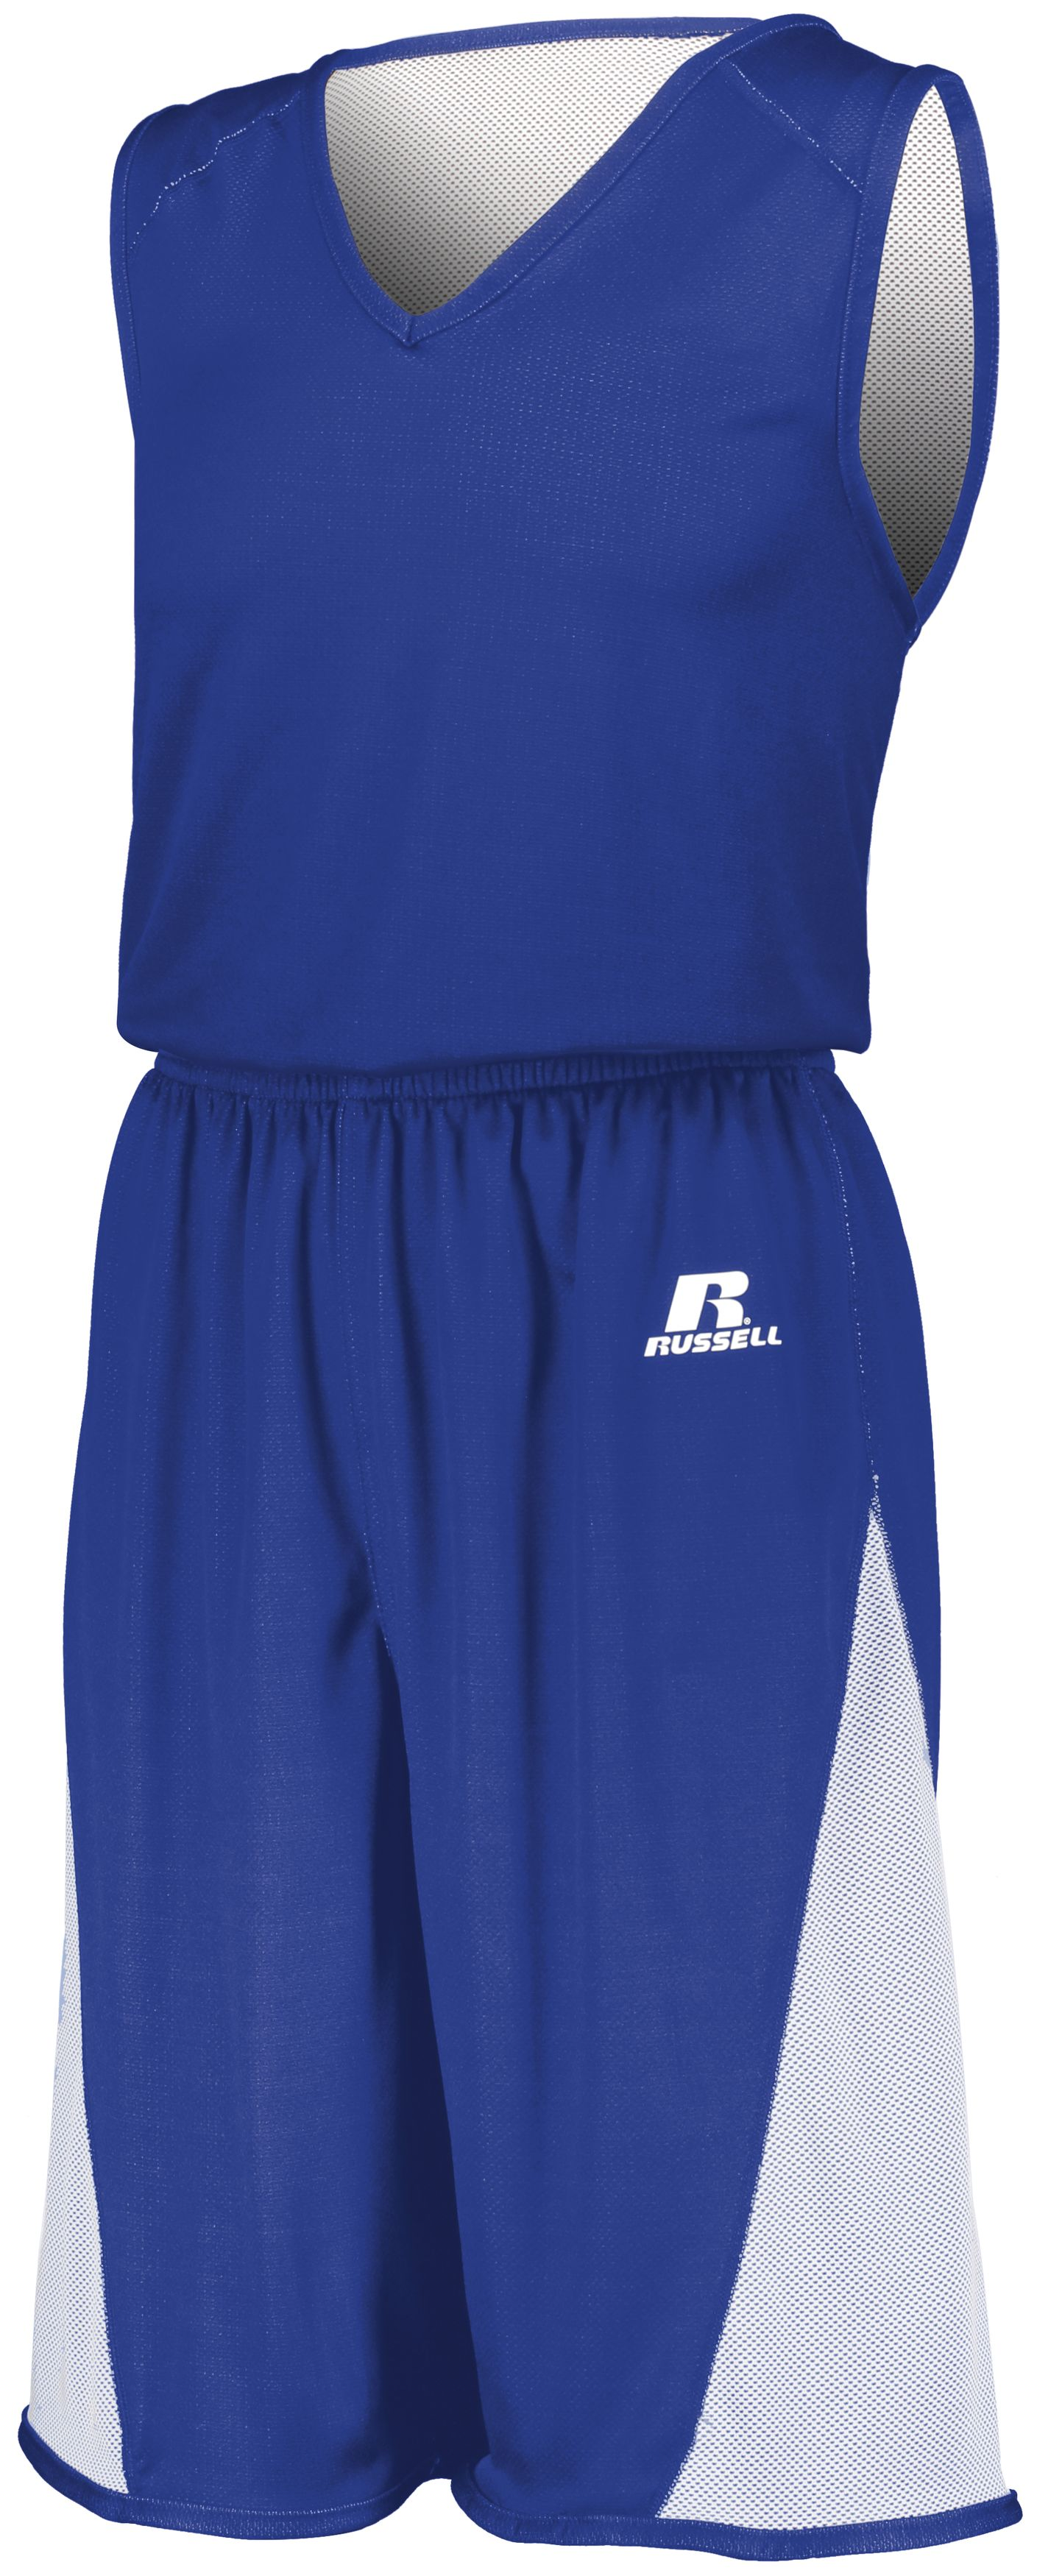 Undivided Single Ply Reversible Jersey - ROYAL/WHITE